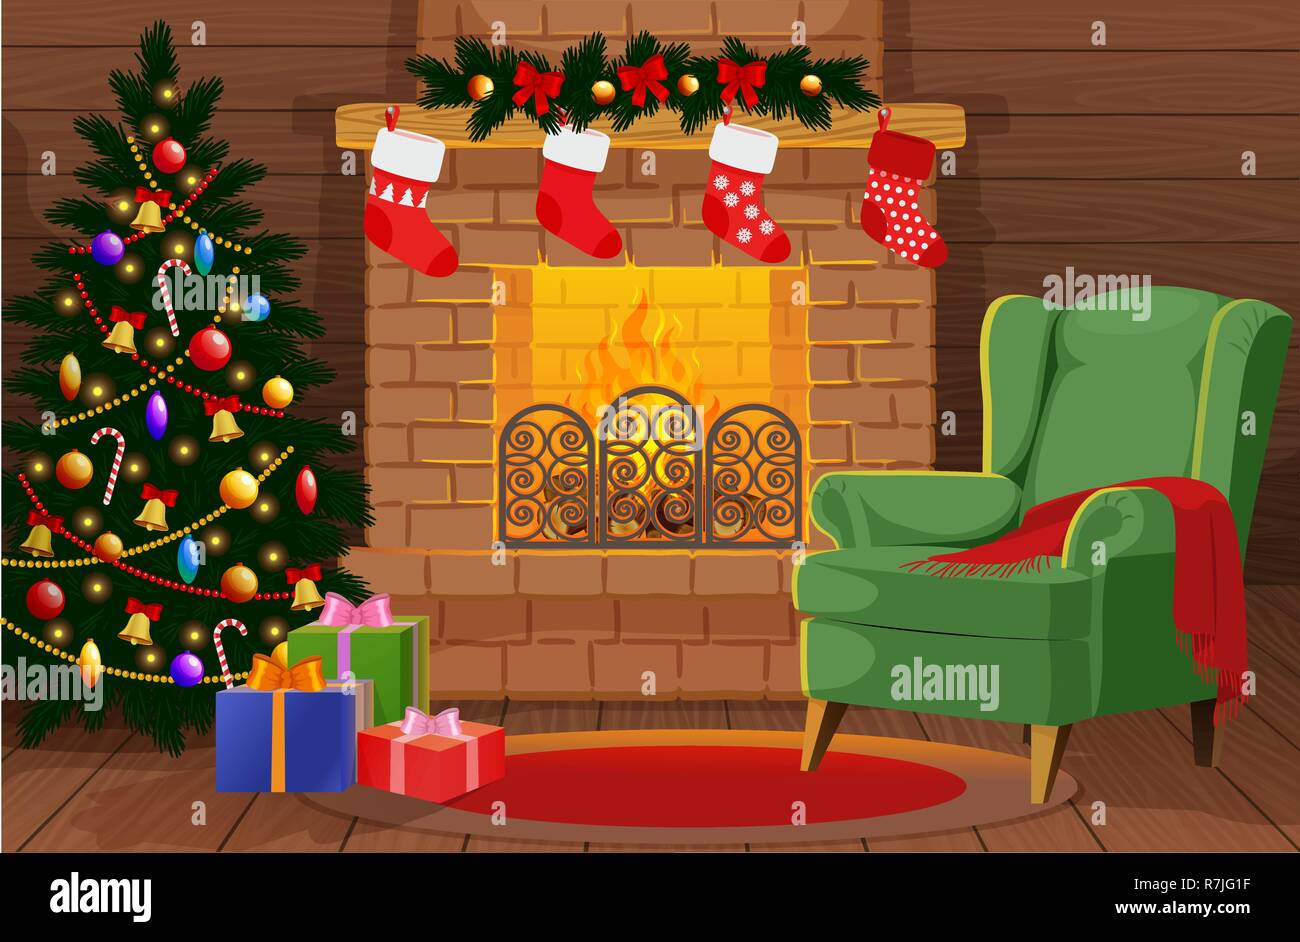 Decorated Christmas room with xmas tree, gifts, fireplace, armchair - Stock Vector